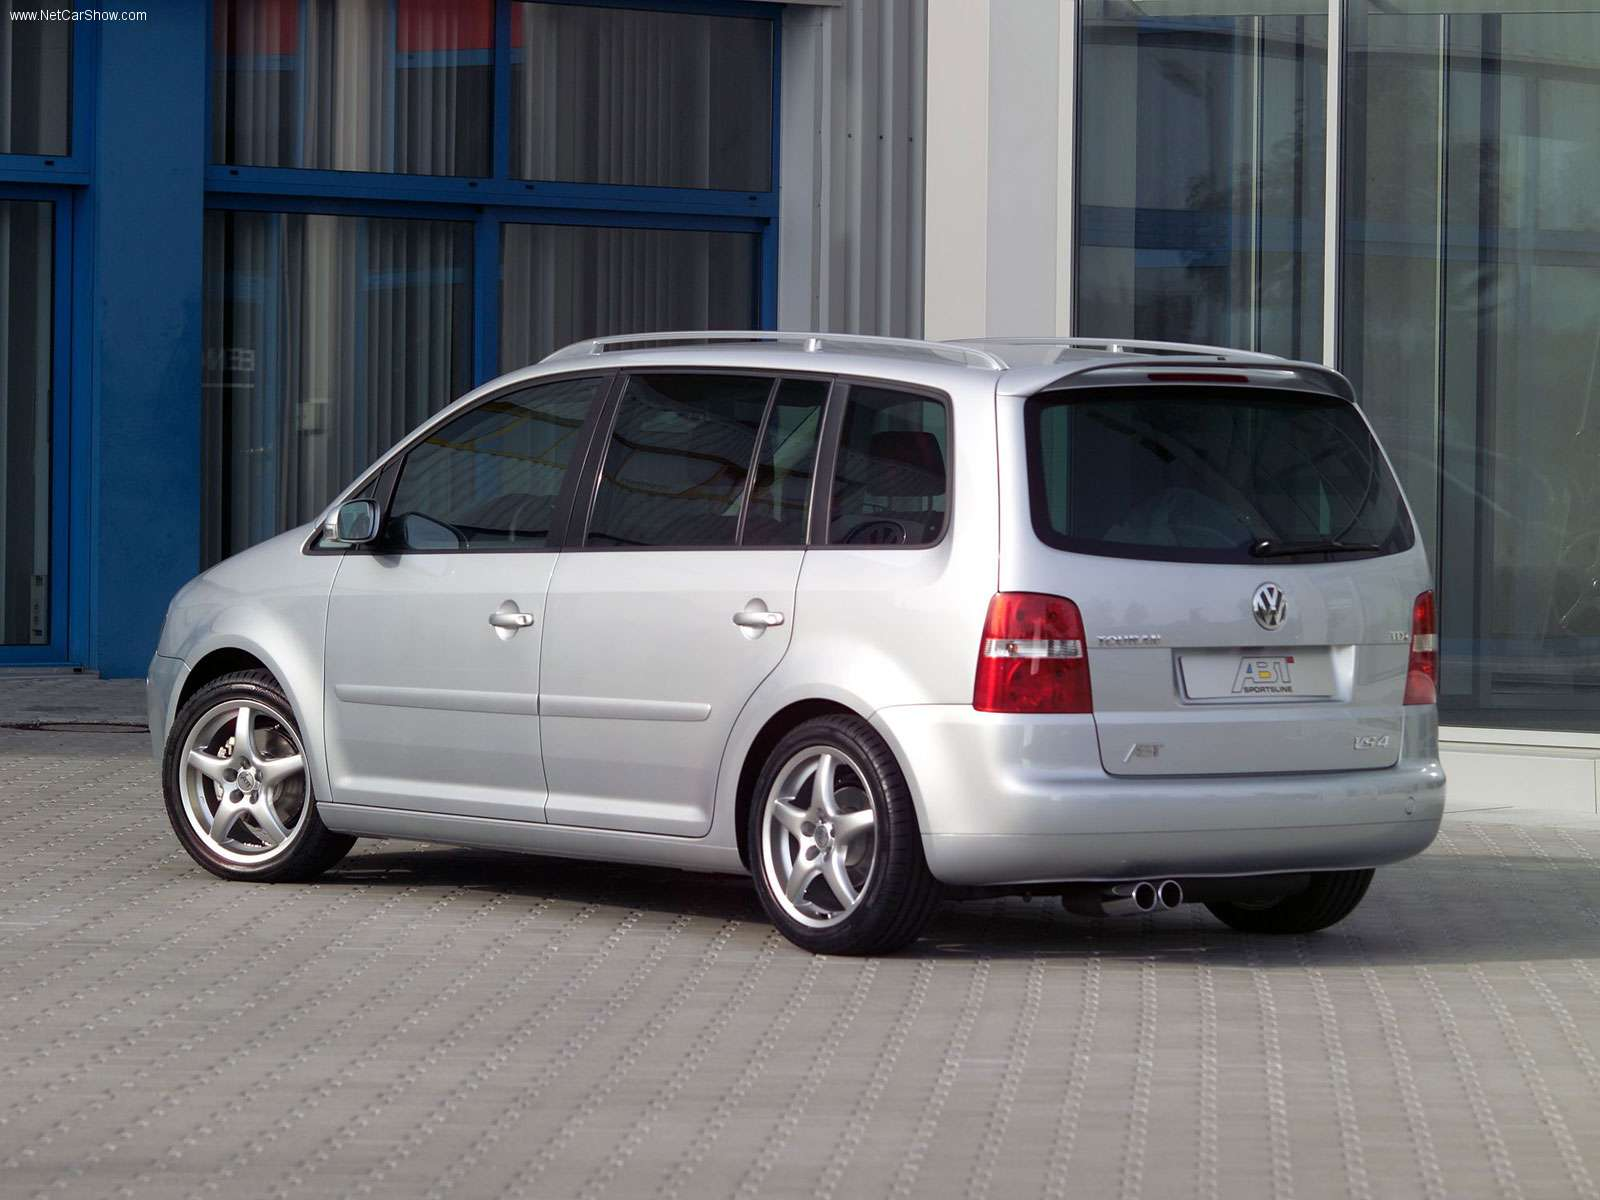 Abt Vw Touran Images Car Blog